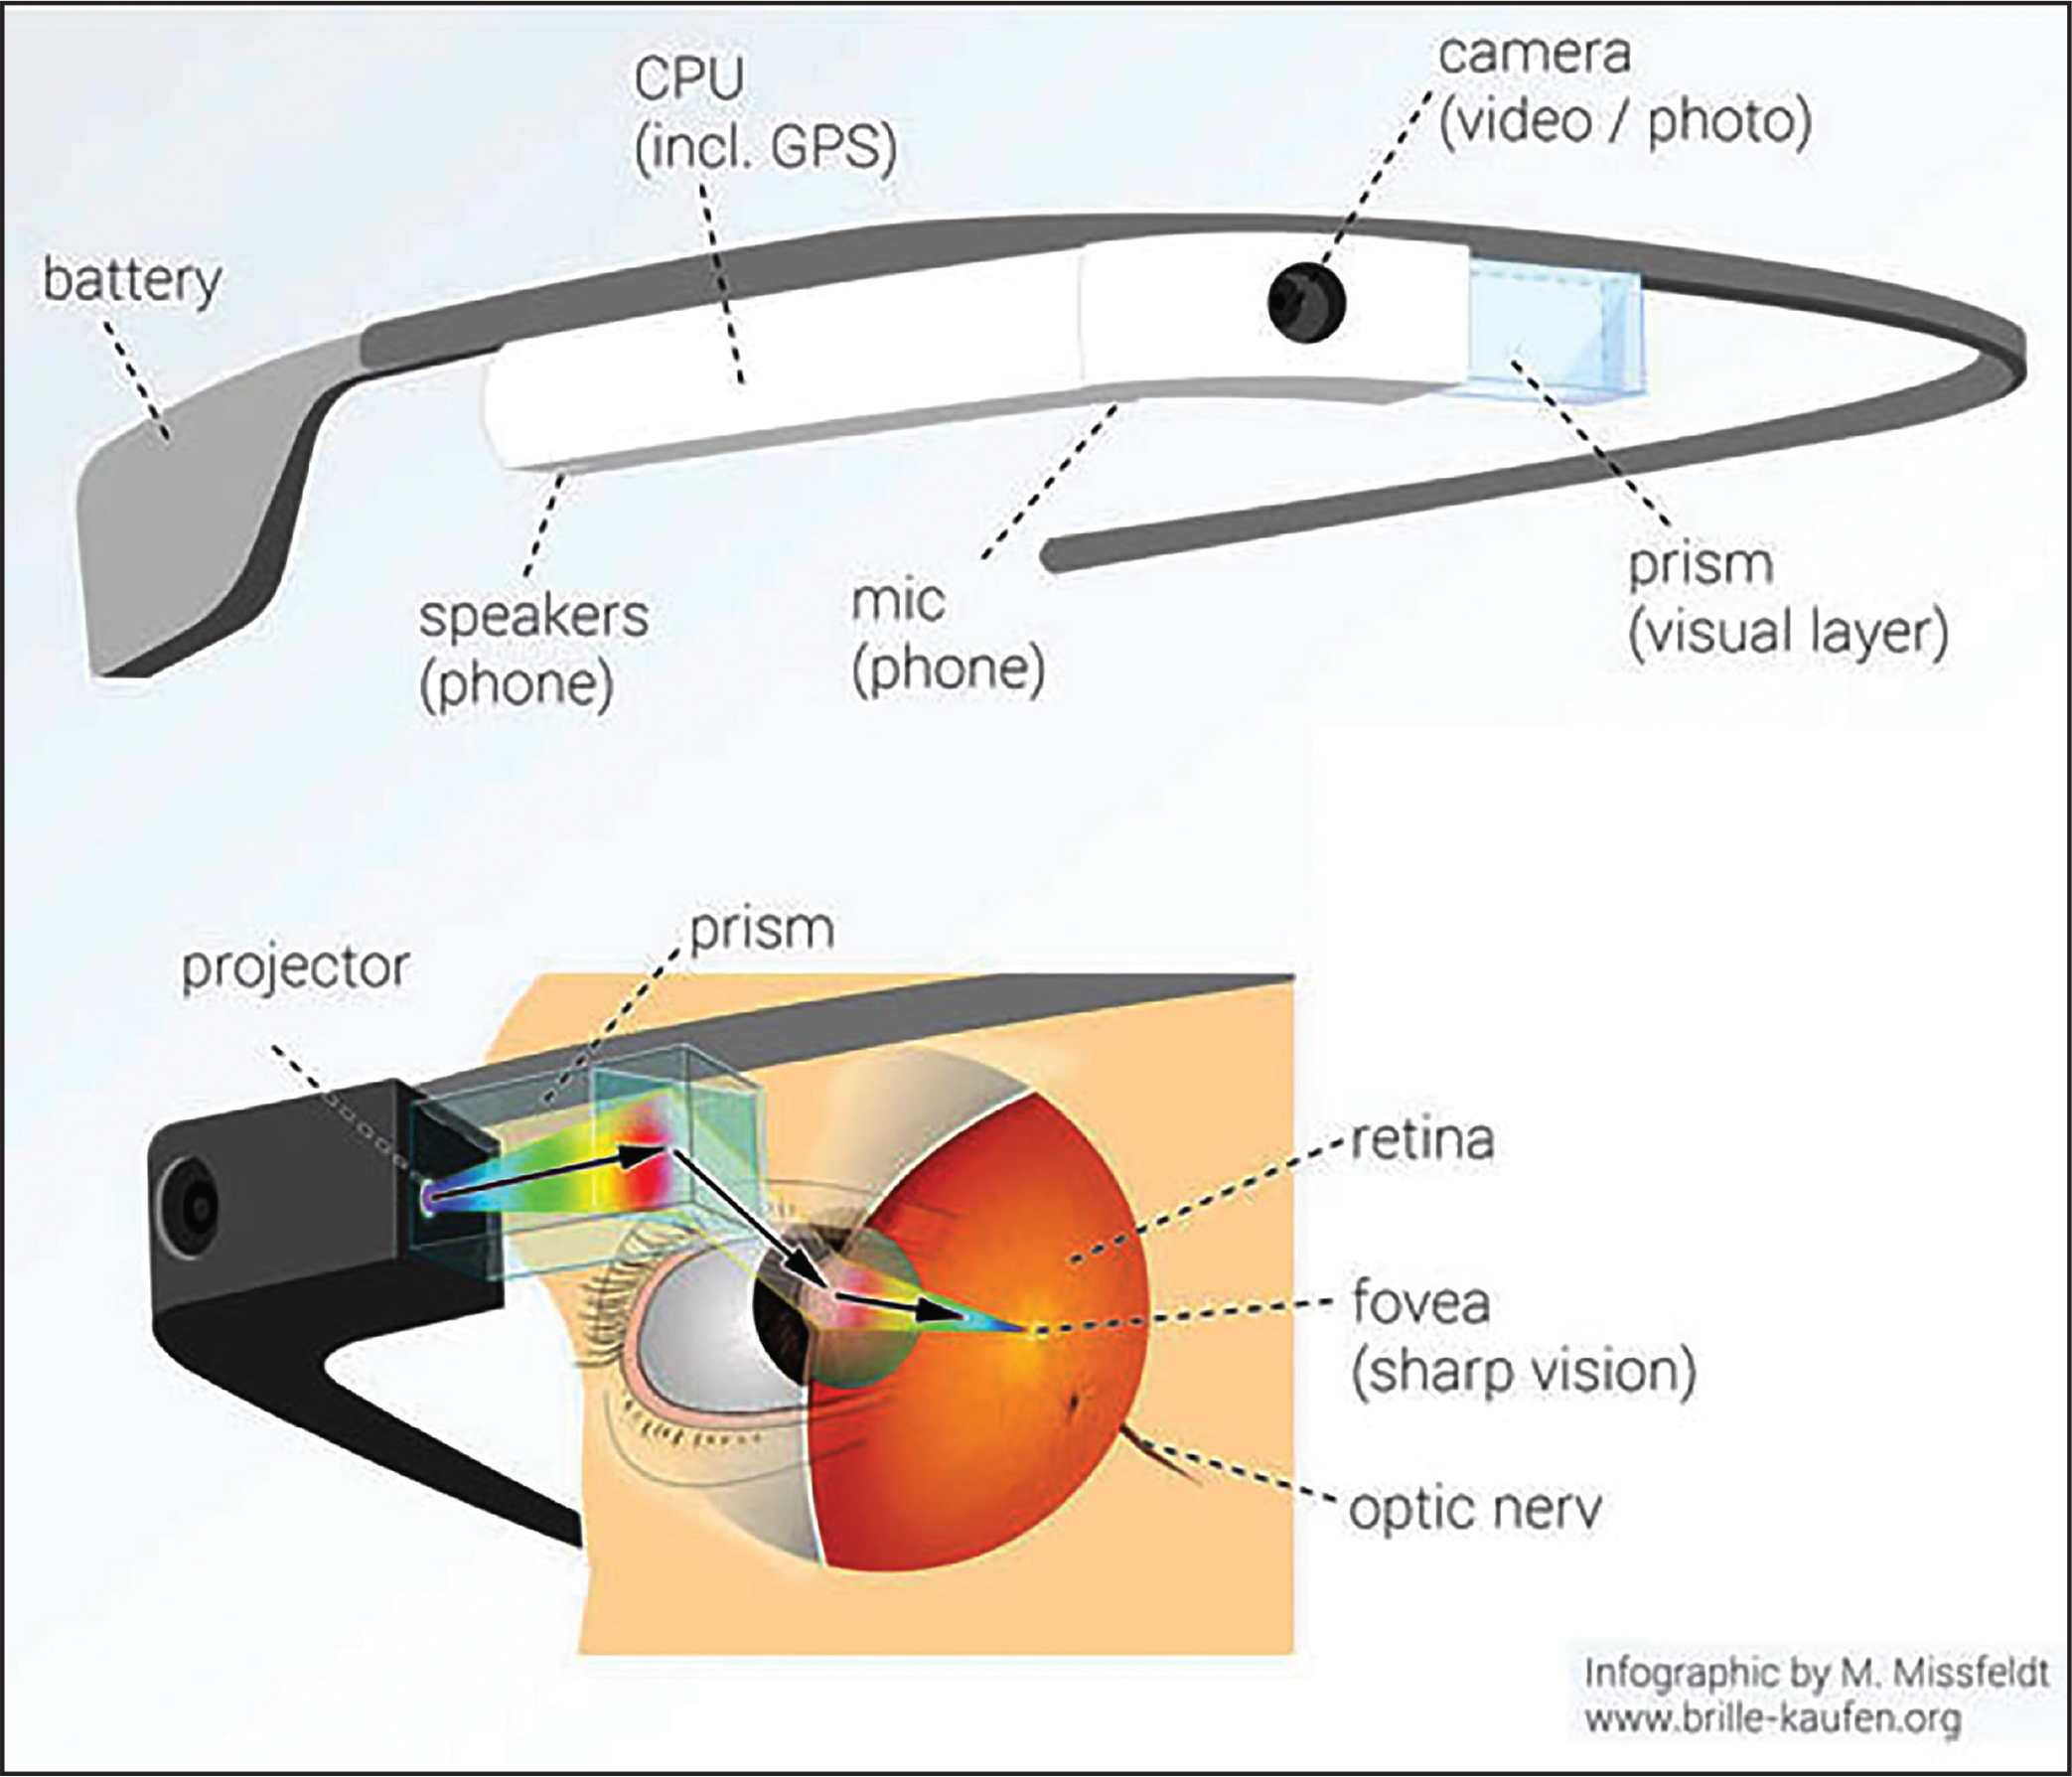 Expansion of severely constricted visual field using google glass schematic of google glass adapted and modified from missfeldt m martin missfeldt graphic on ccuart Choice Image